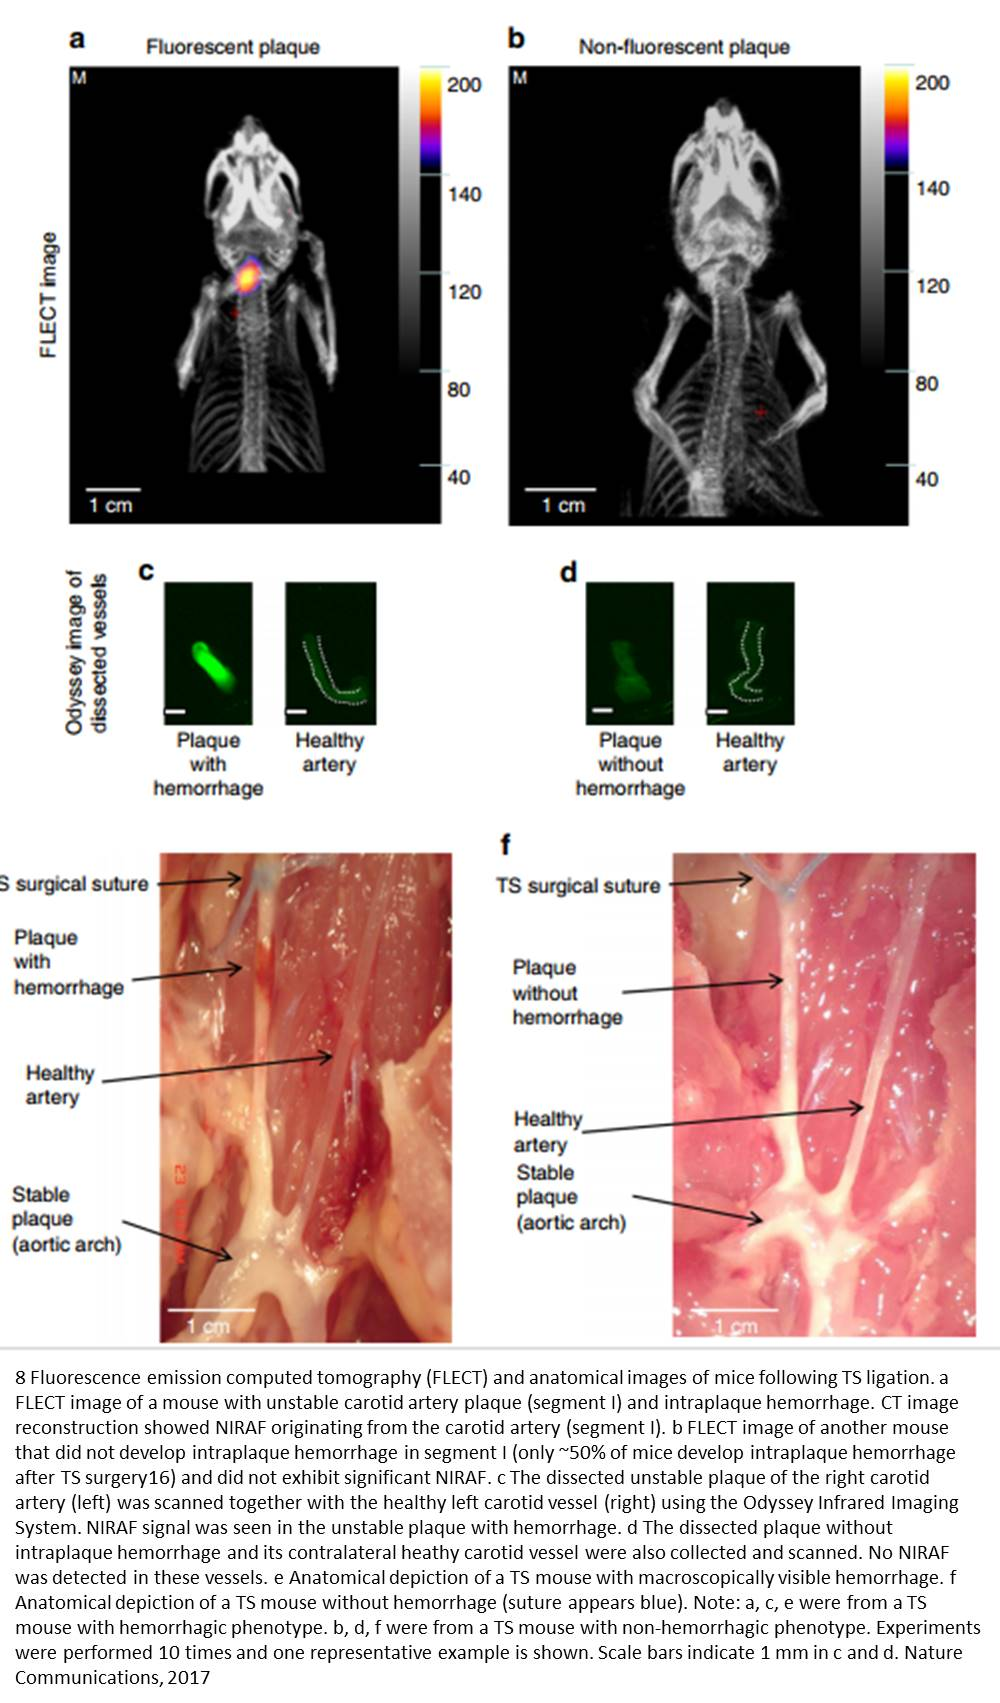 Near-infrared light to identify high-risk arterial plaques